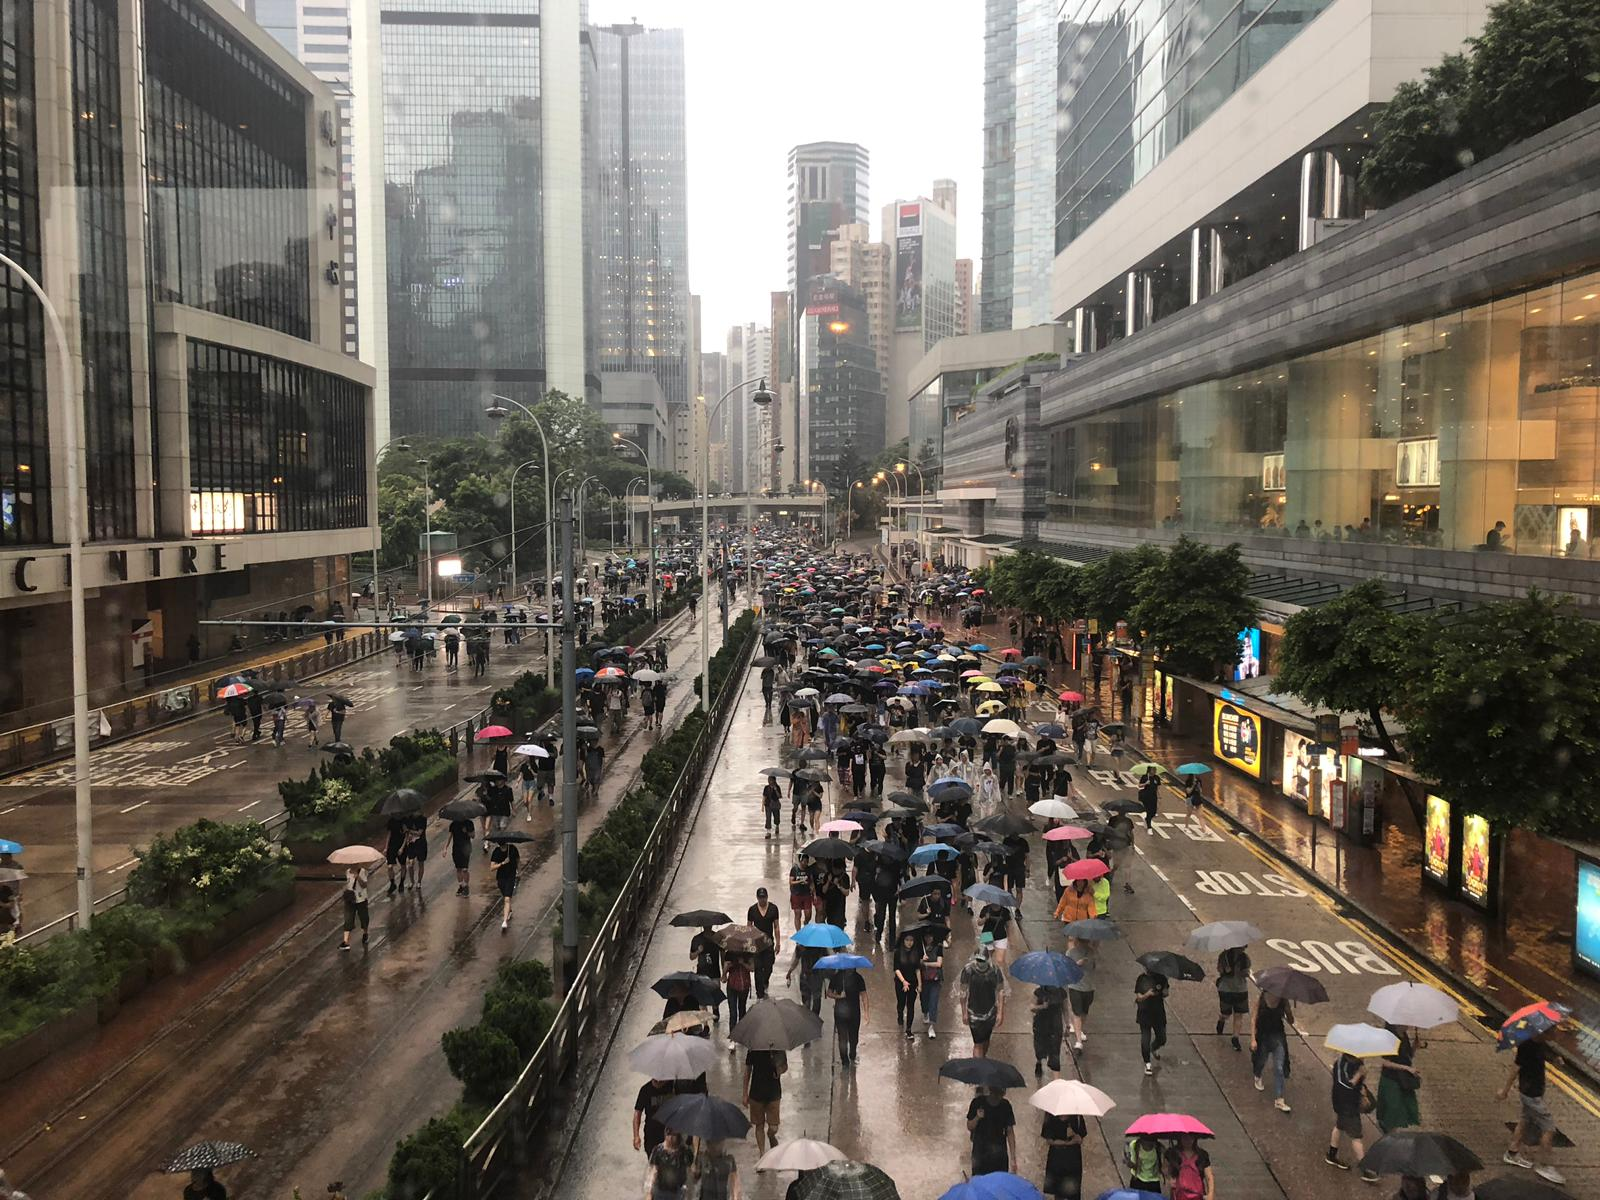 Some protesters are marching through Amdiralty, the city's financial center.